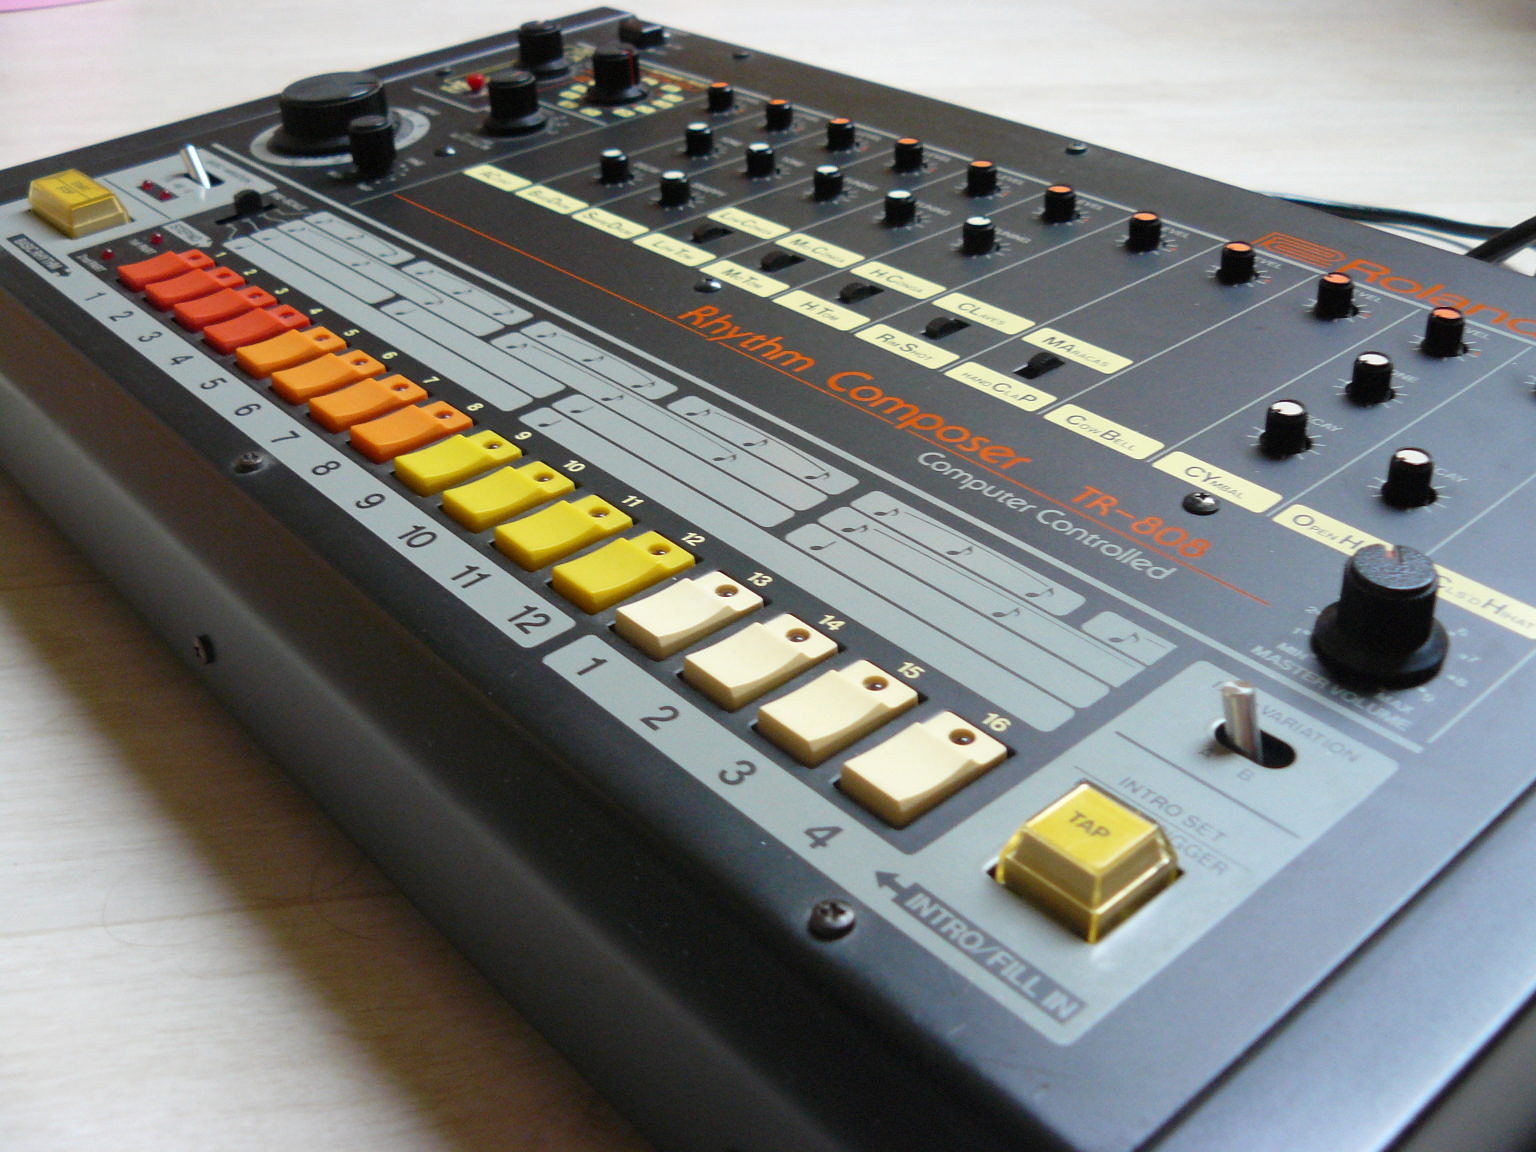 Behringer cloning TR-808, MS-20, almost all synths and drum machines